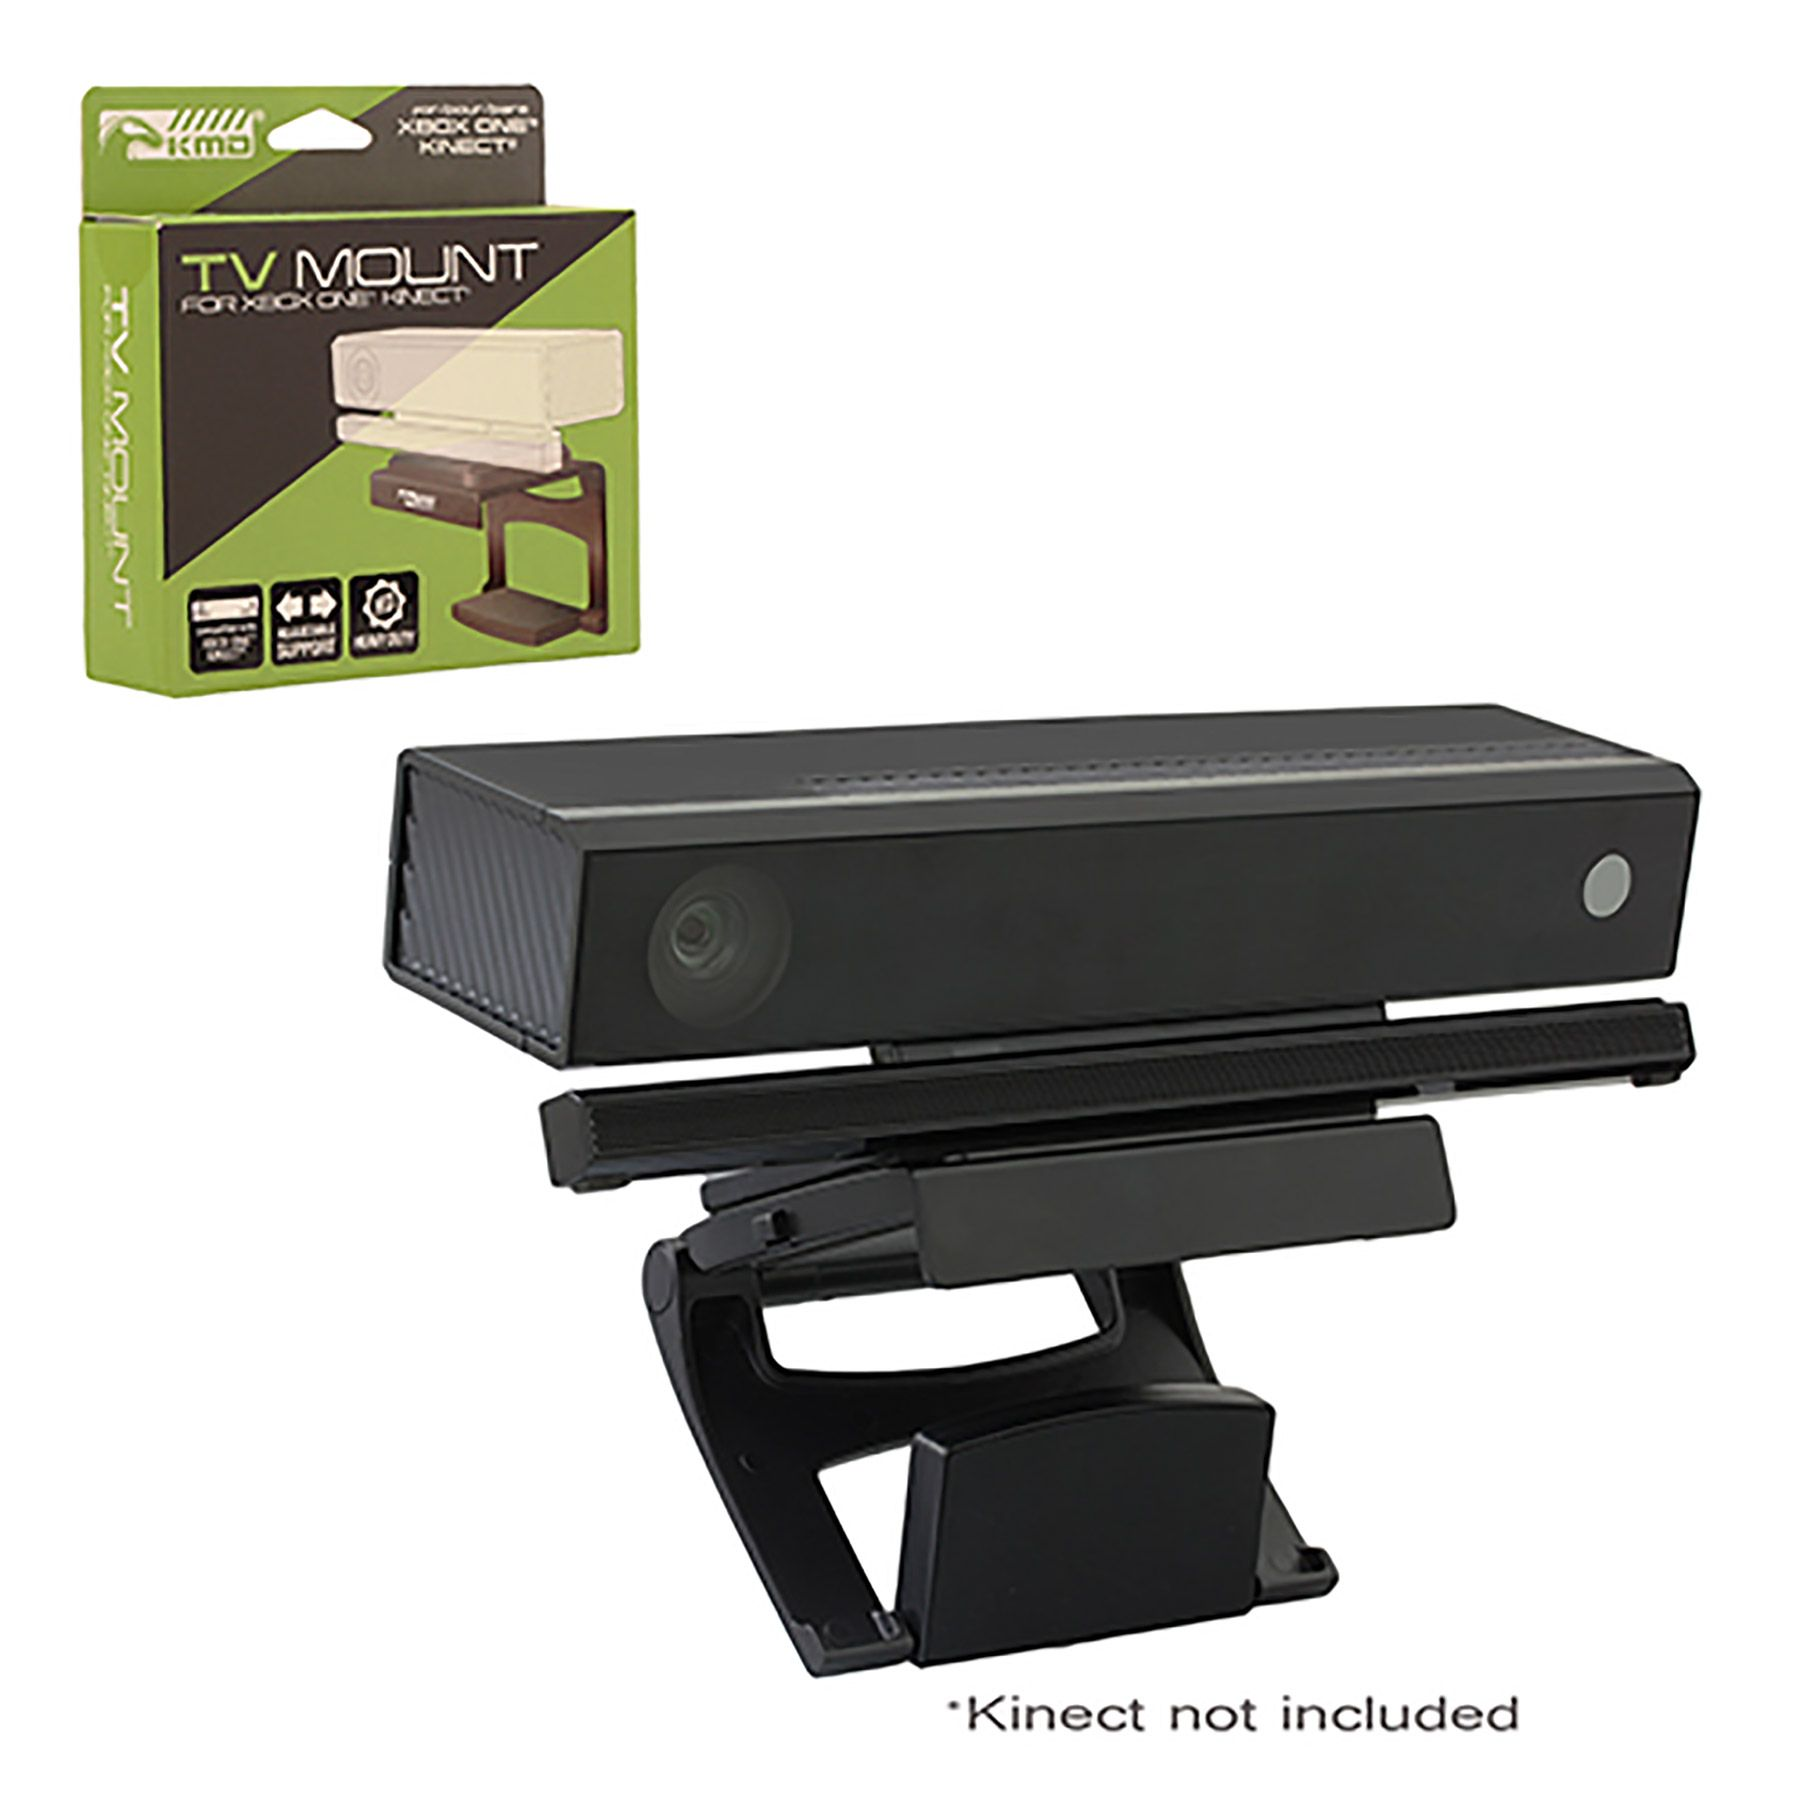 Wohnzimmer-pc-steuerung Tv Mount In Black For Xbox One Kinect V2 Https Www